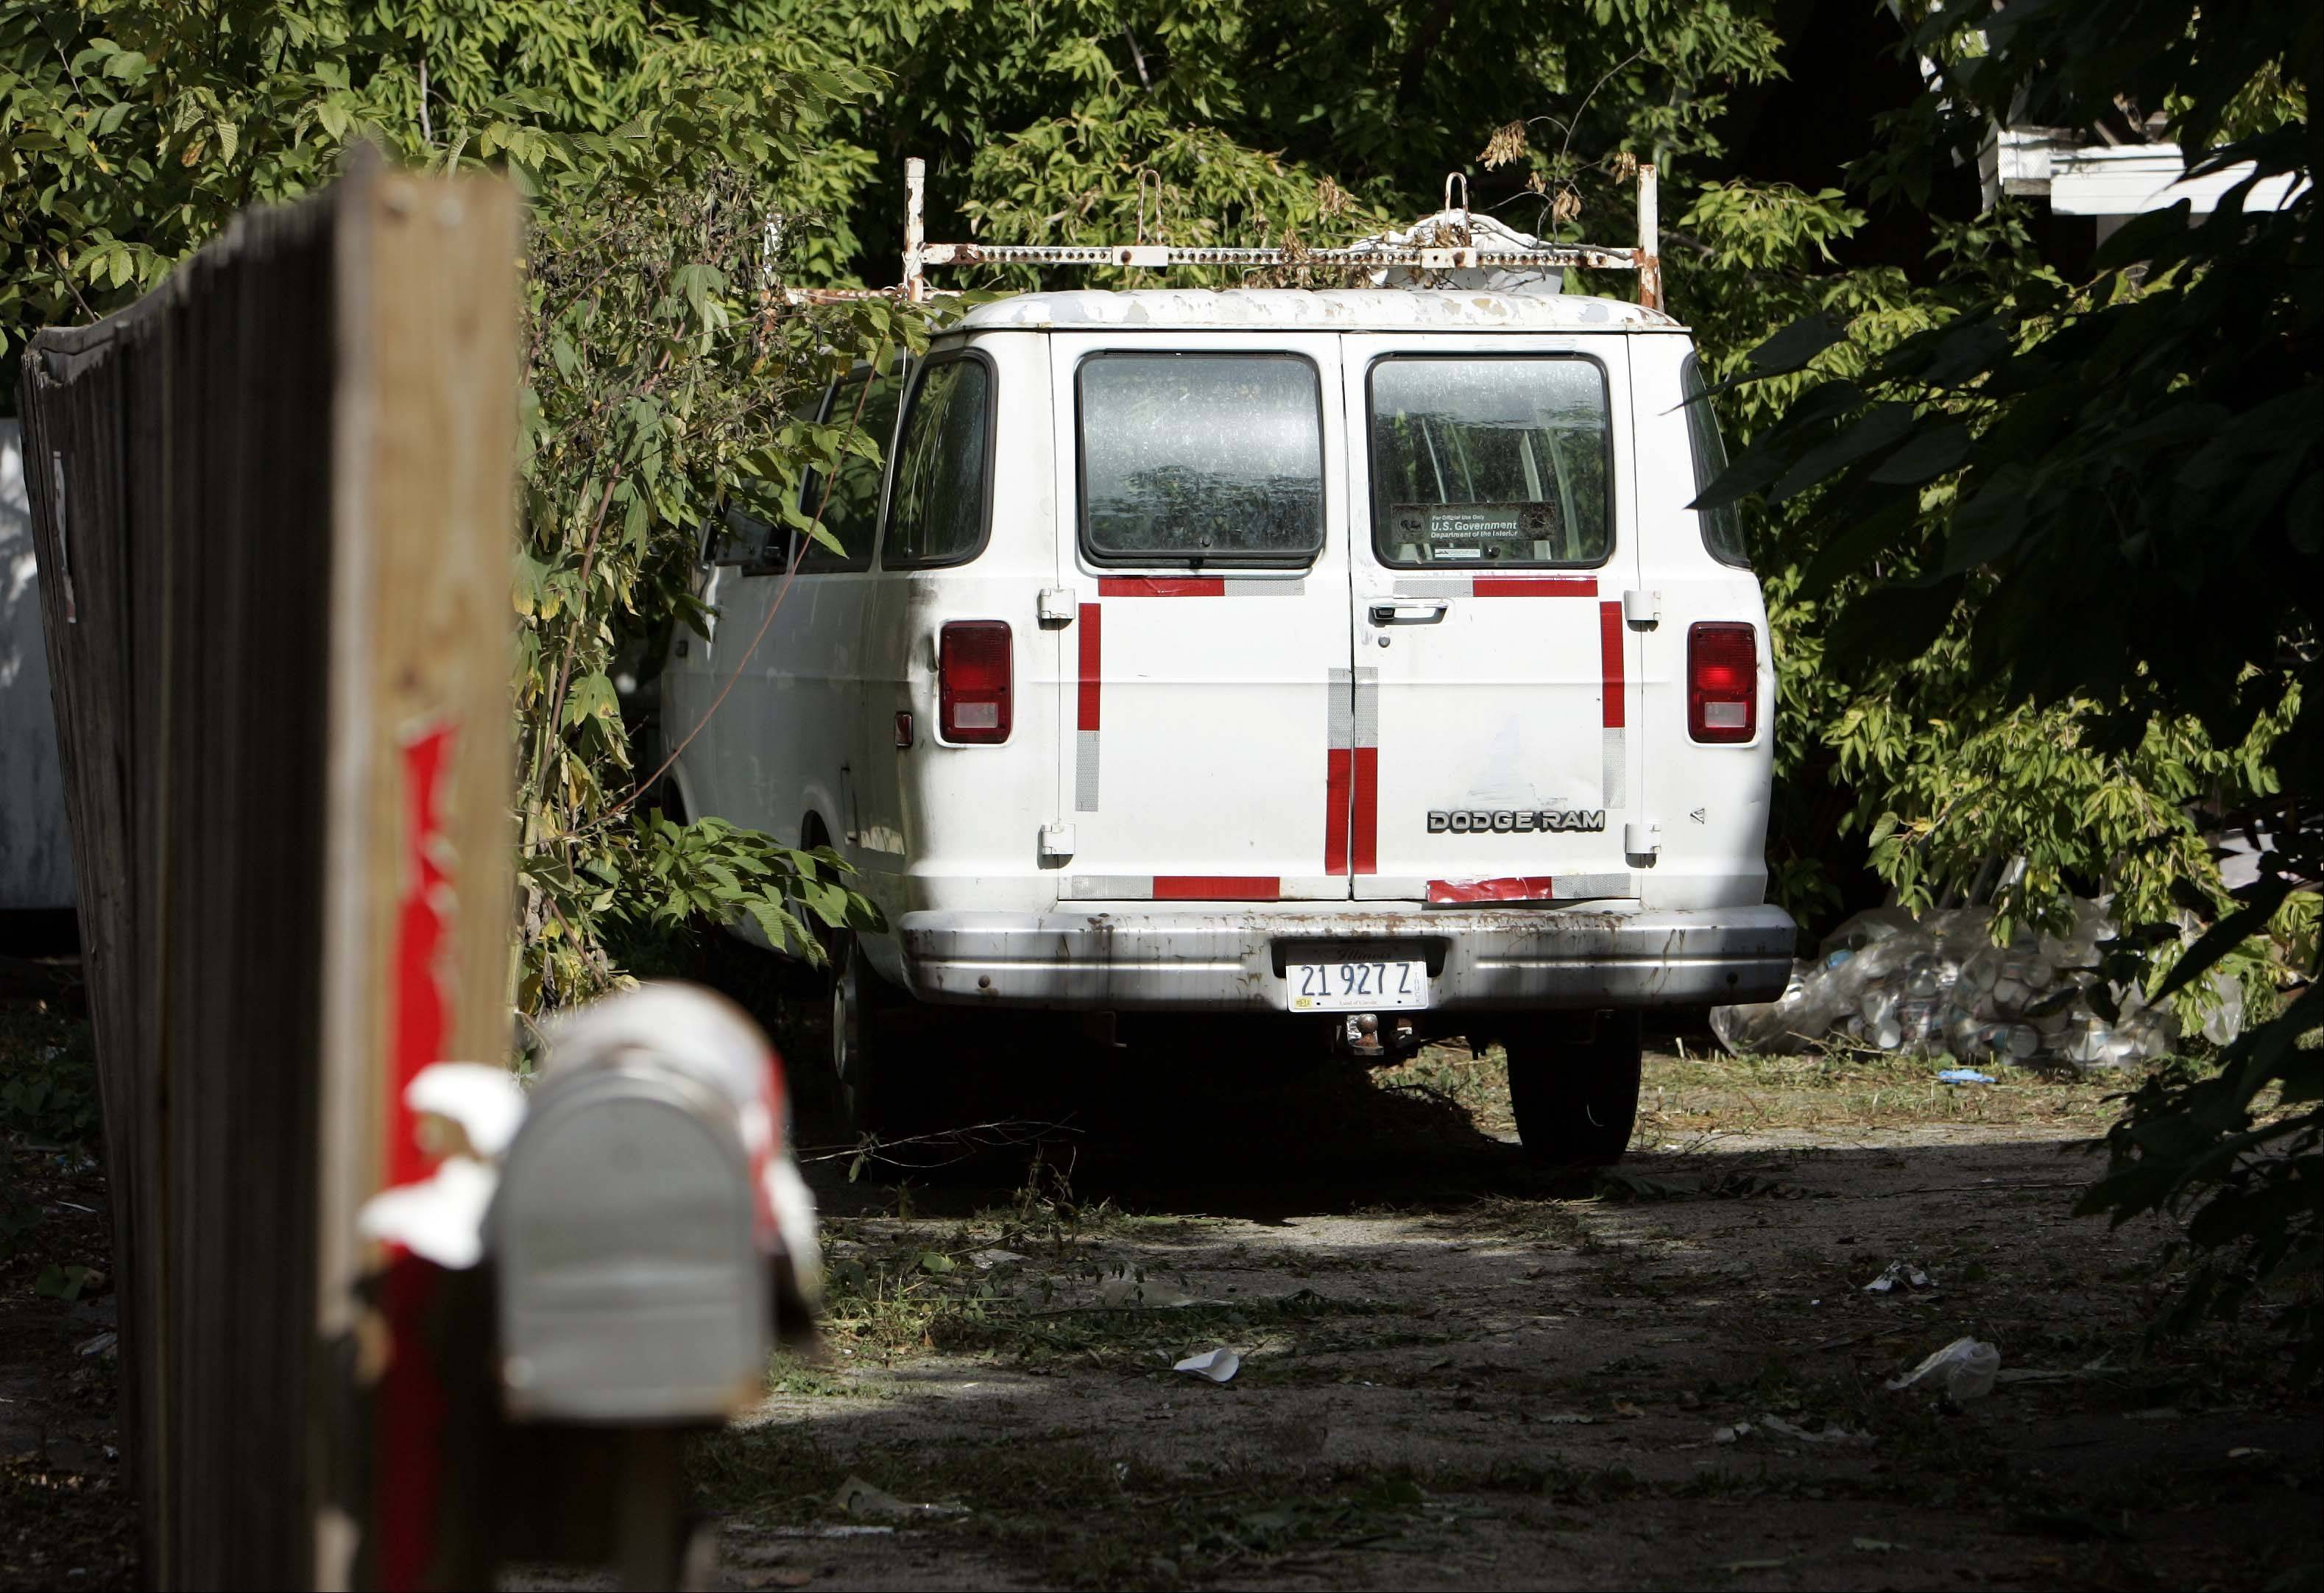 Elgin police said more than 40 dead cats and other animals were found Sept. 26, 2012 in a van on Villa Street in Elgin.